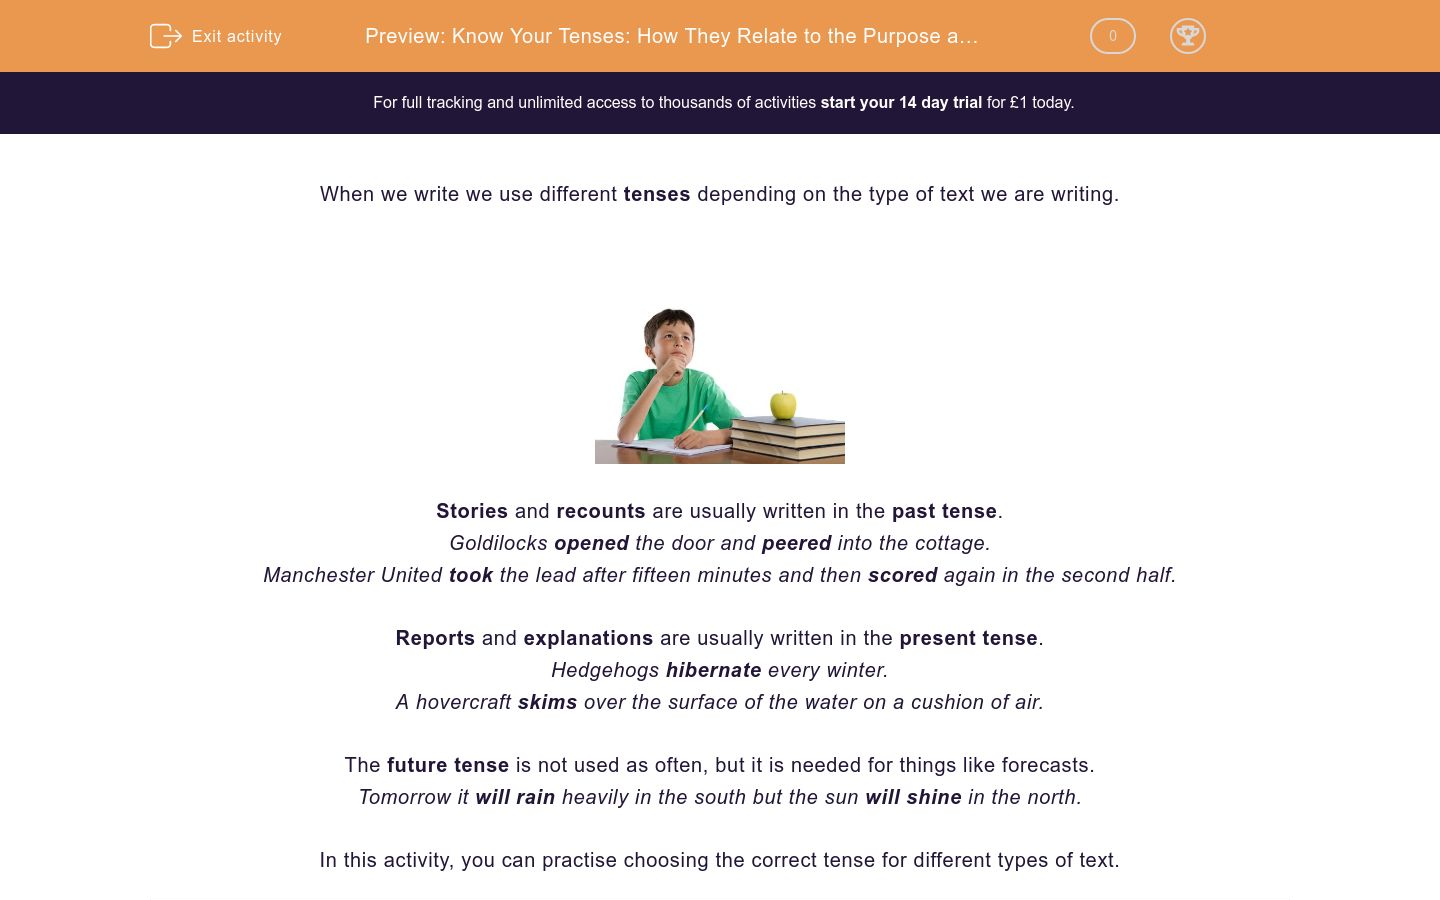 'Know Your Tenses: How They Relate to the Purpose and Structure of Texts' worksheet